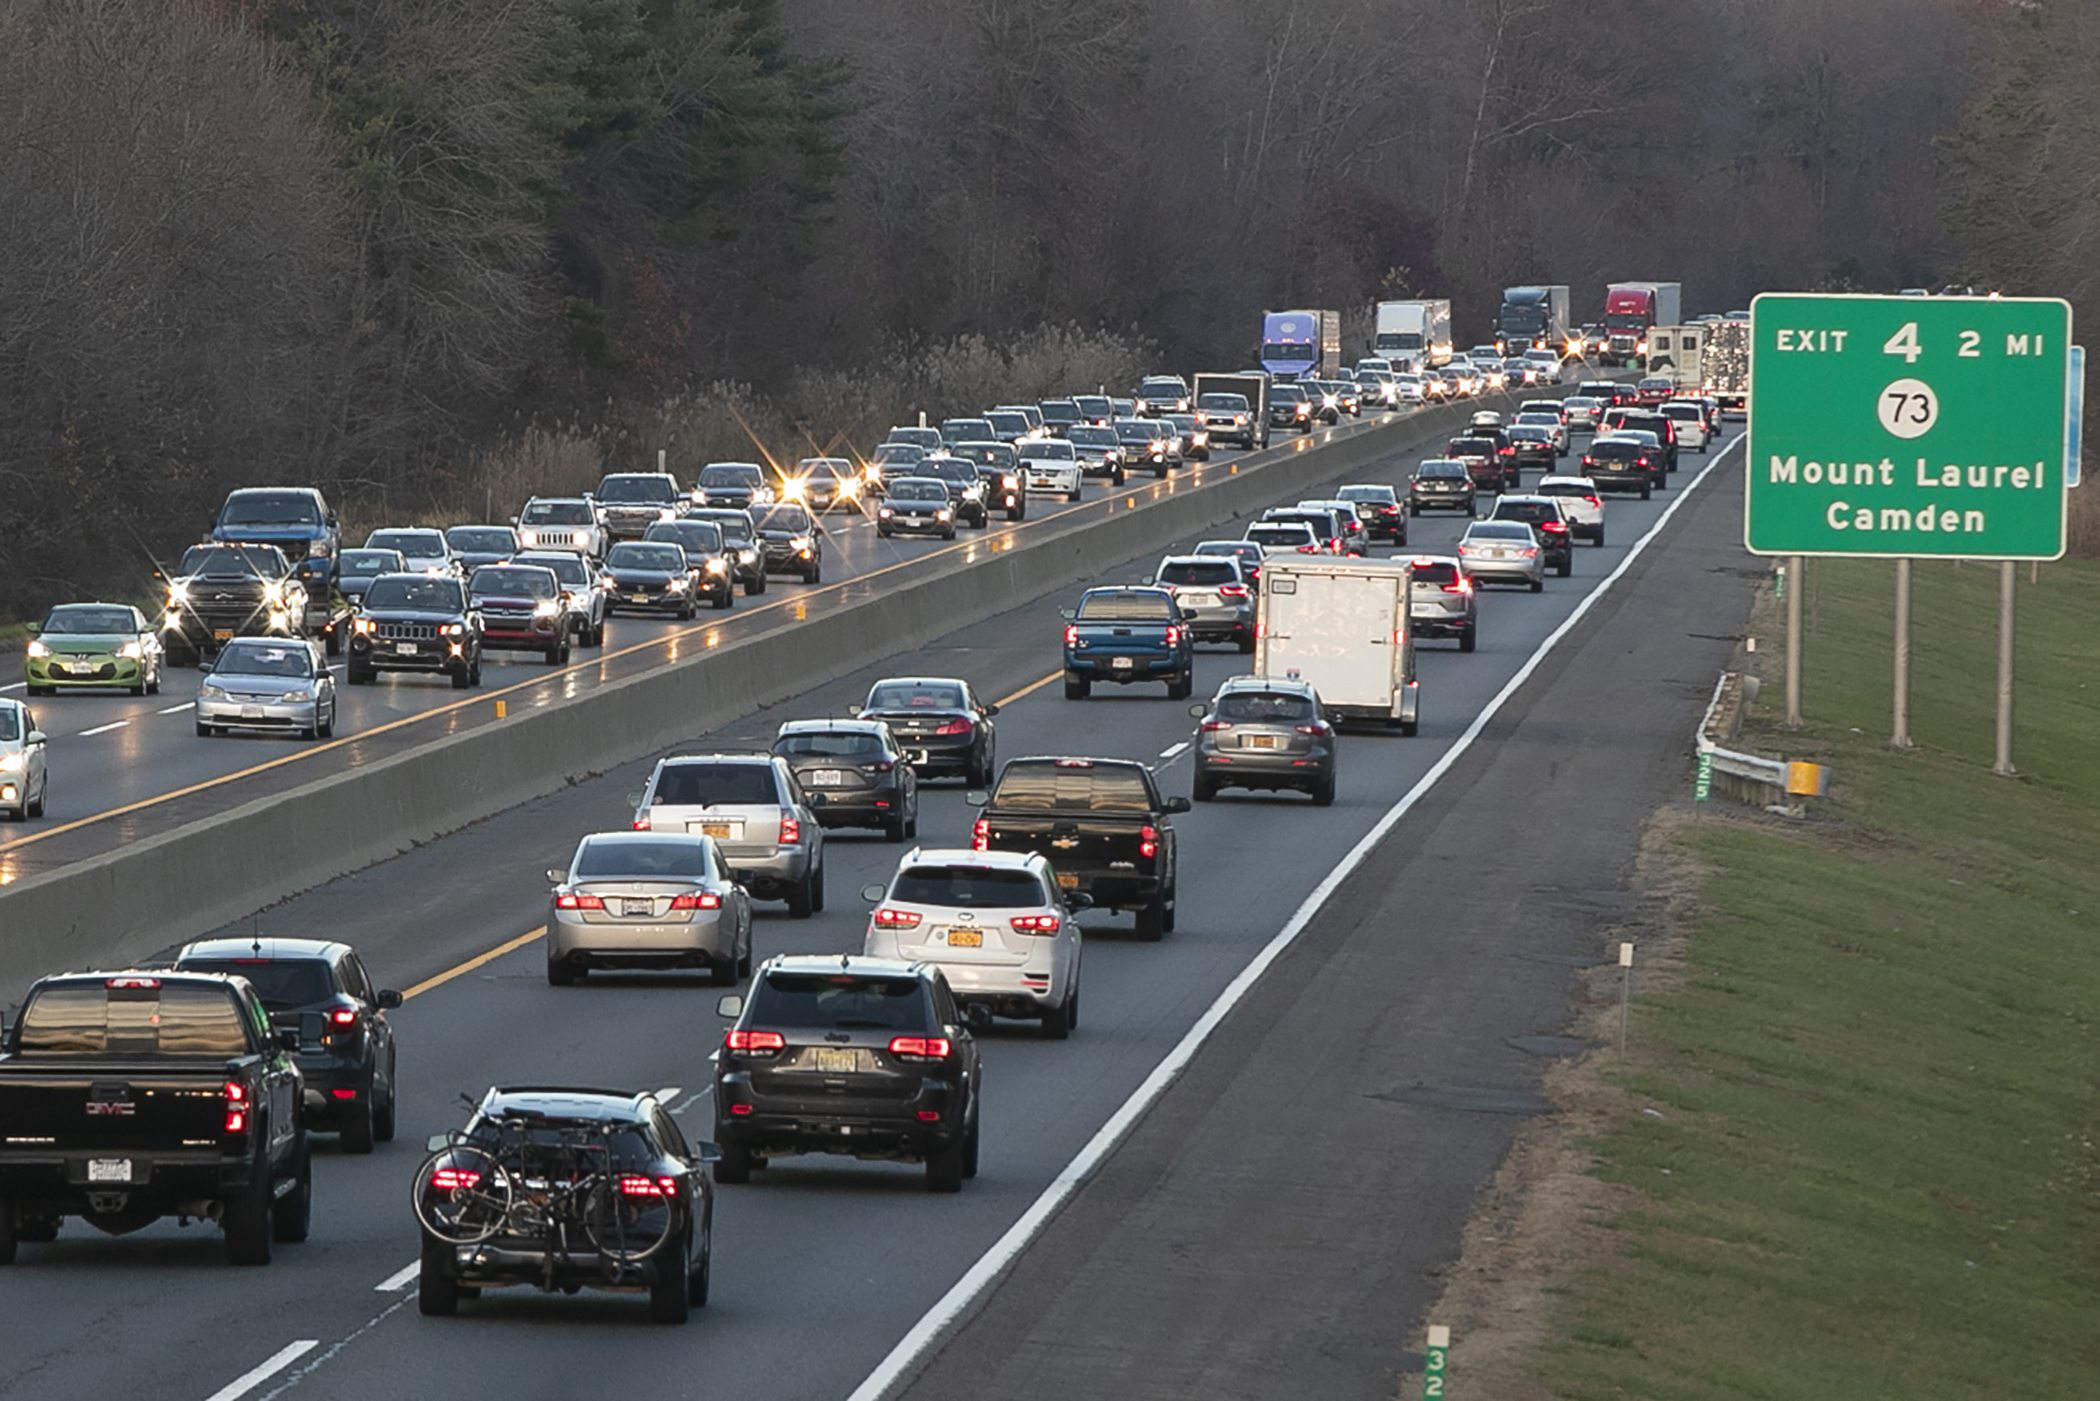 Cars travel the New Jersey Turnpike between Exits 3 和 4 as motorists took to the highway in the late afternoon, Sunday, Nov. 29, 2020, in New Jersey.